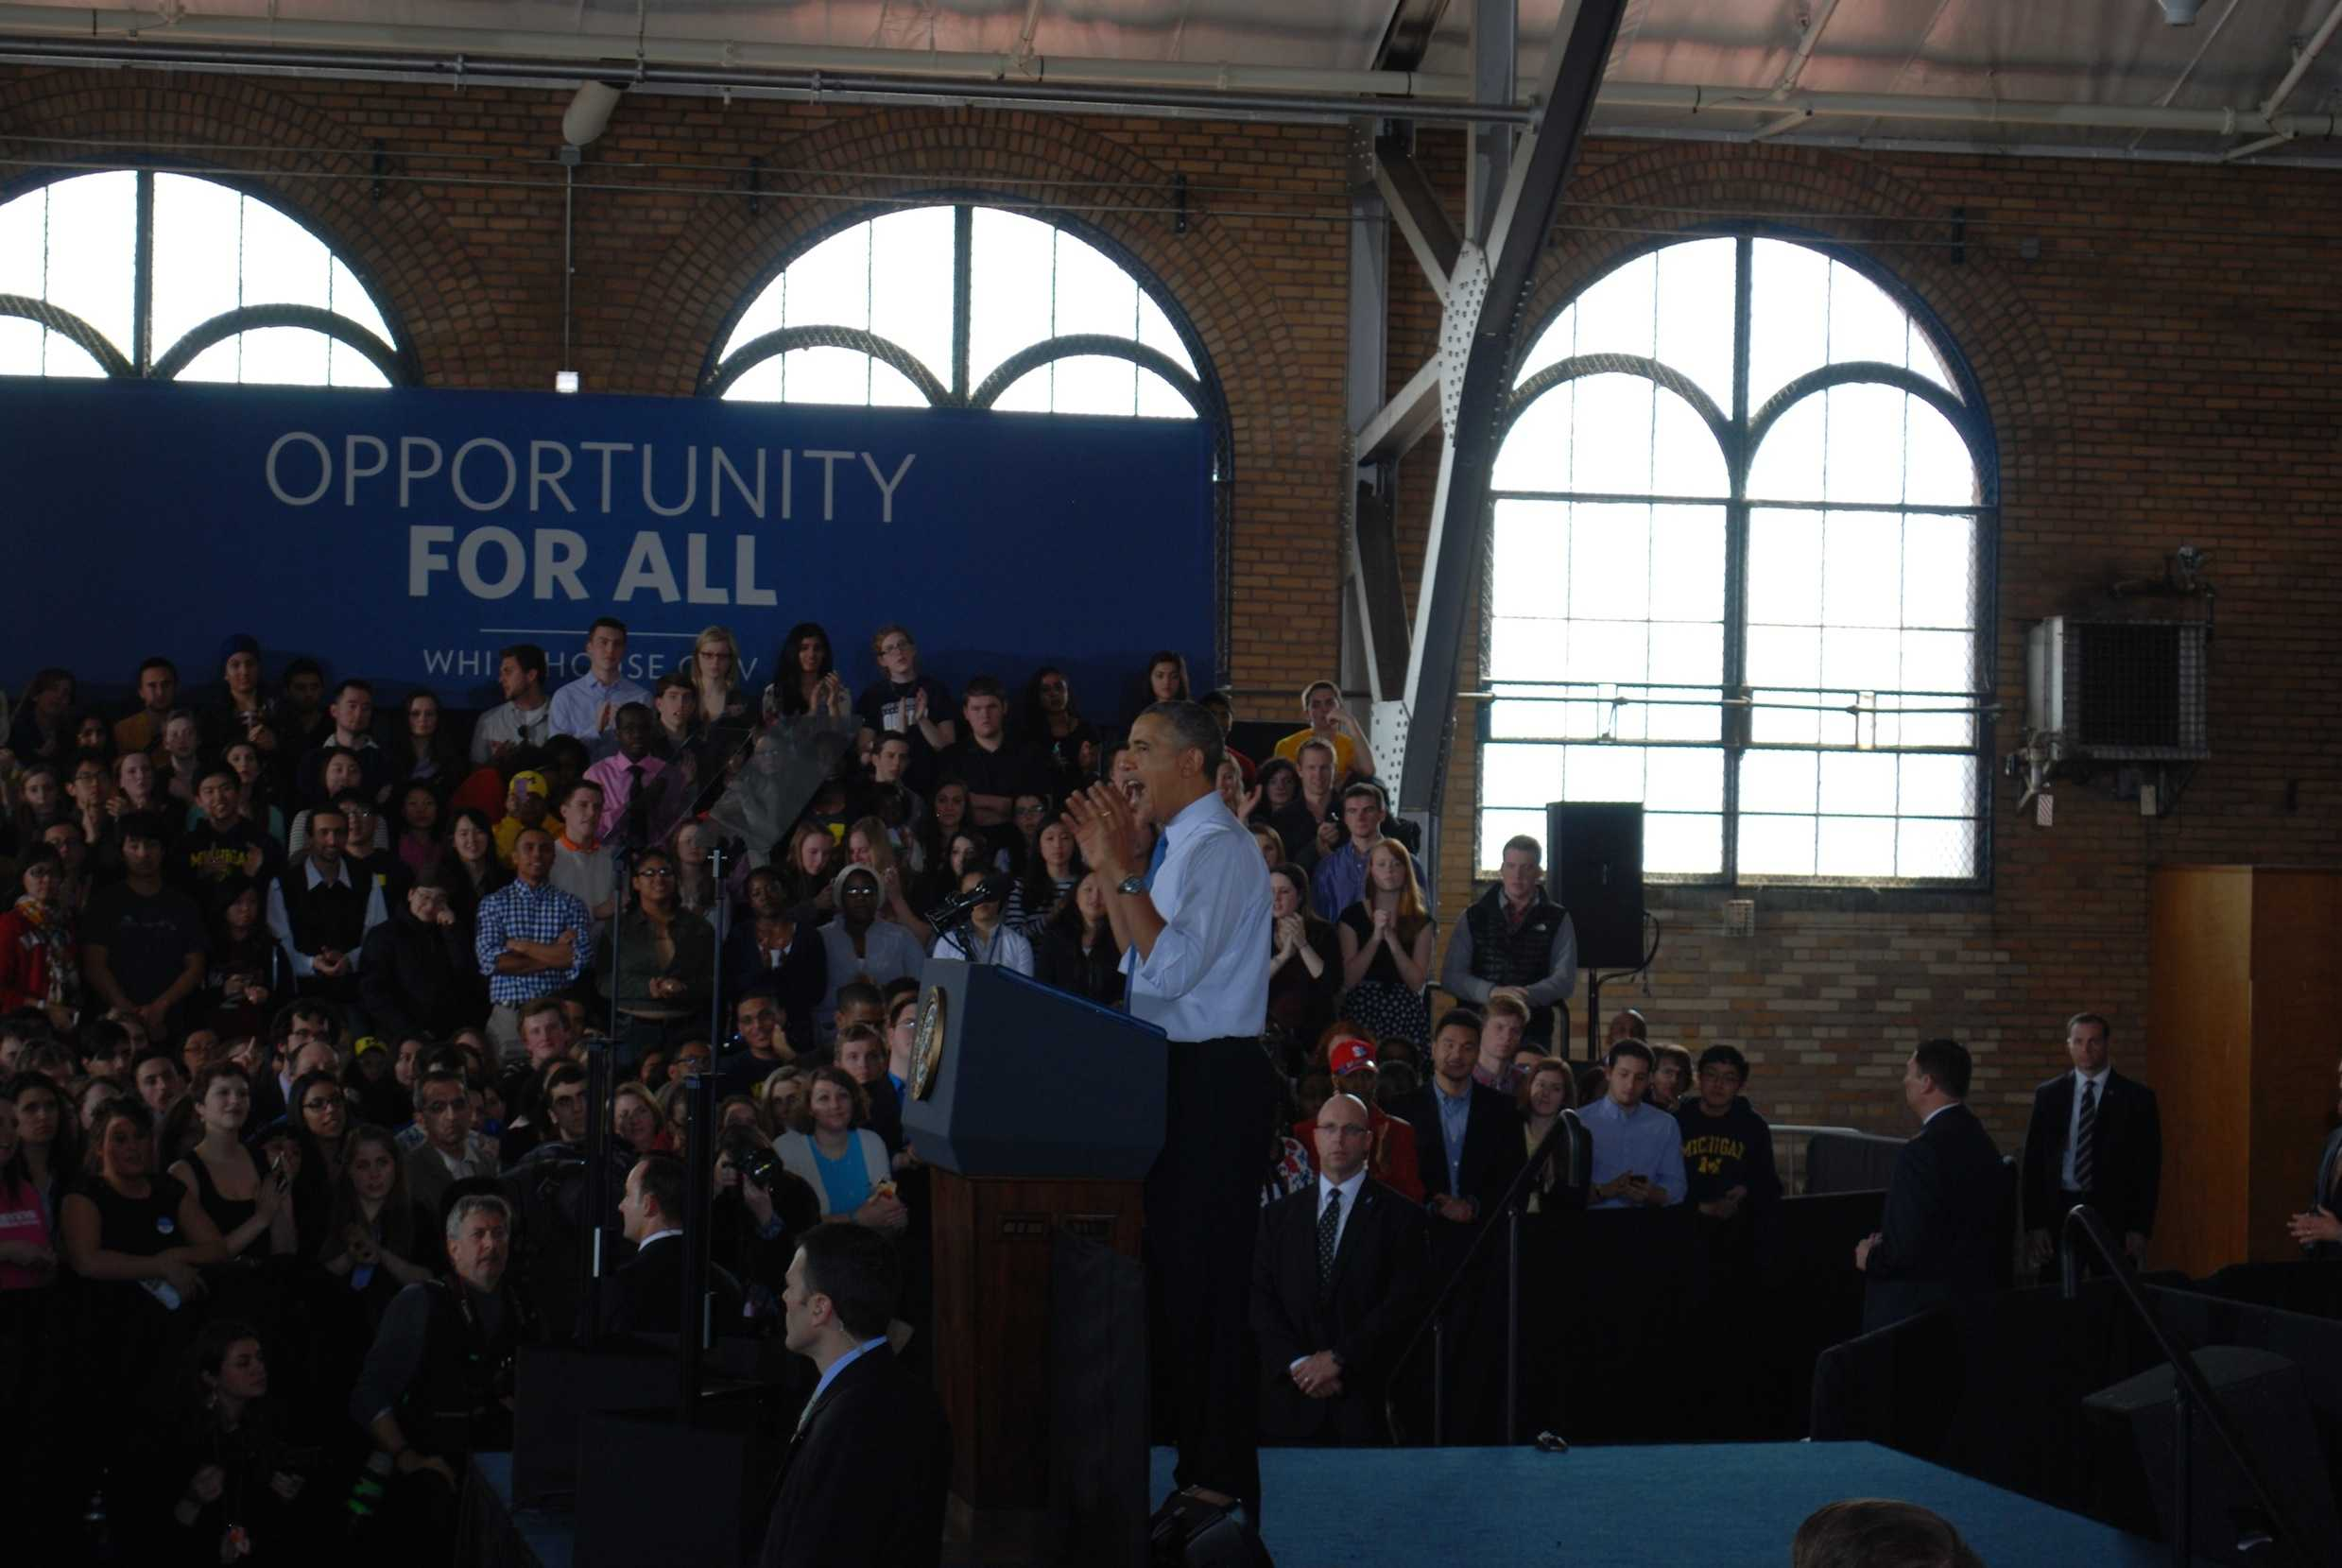 President Obama delivering his speech in the Intramural building.